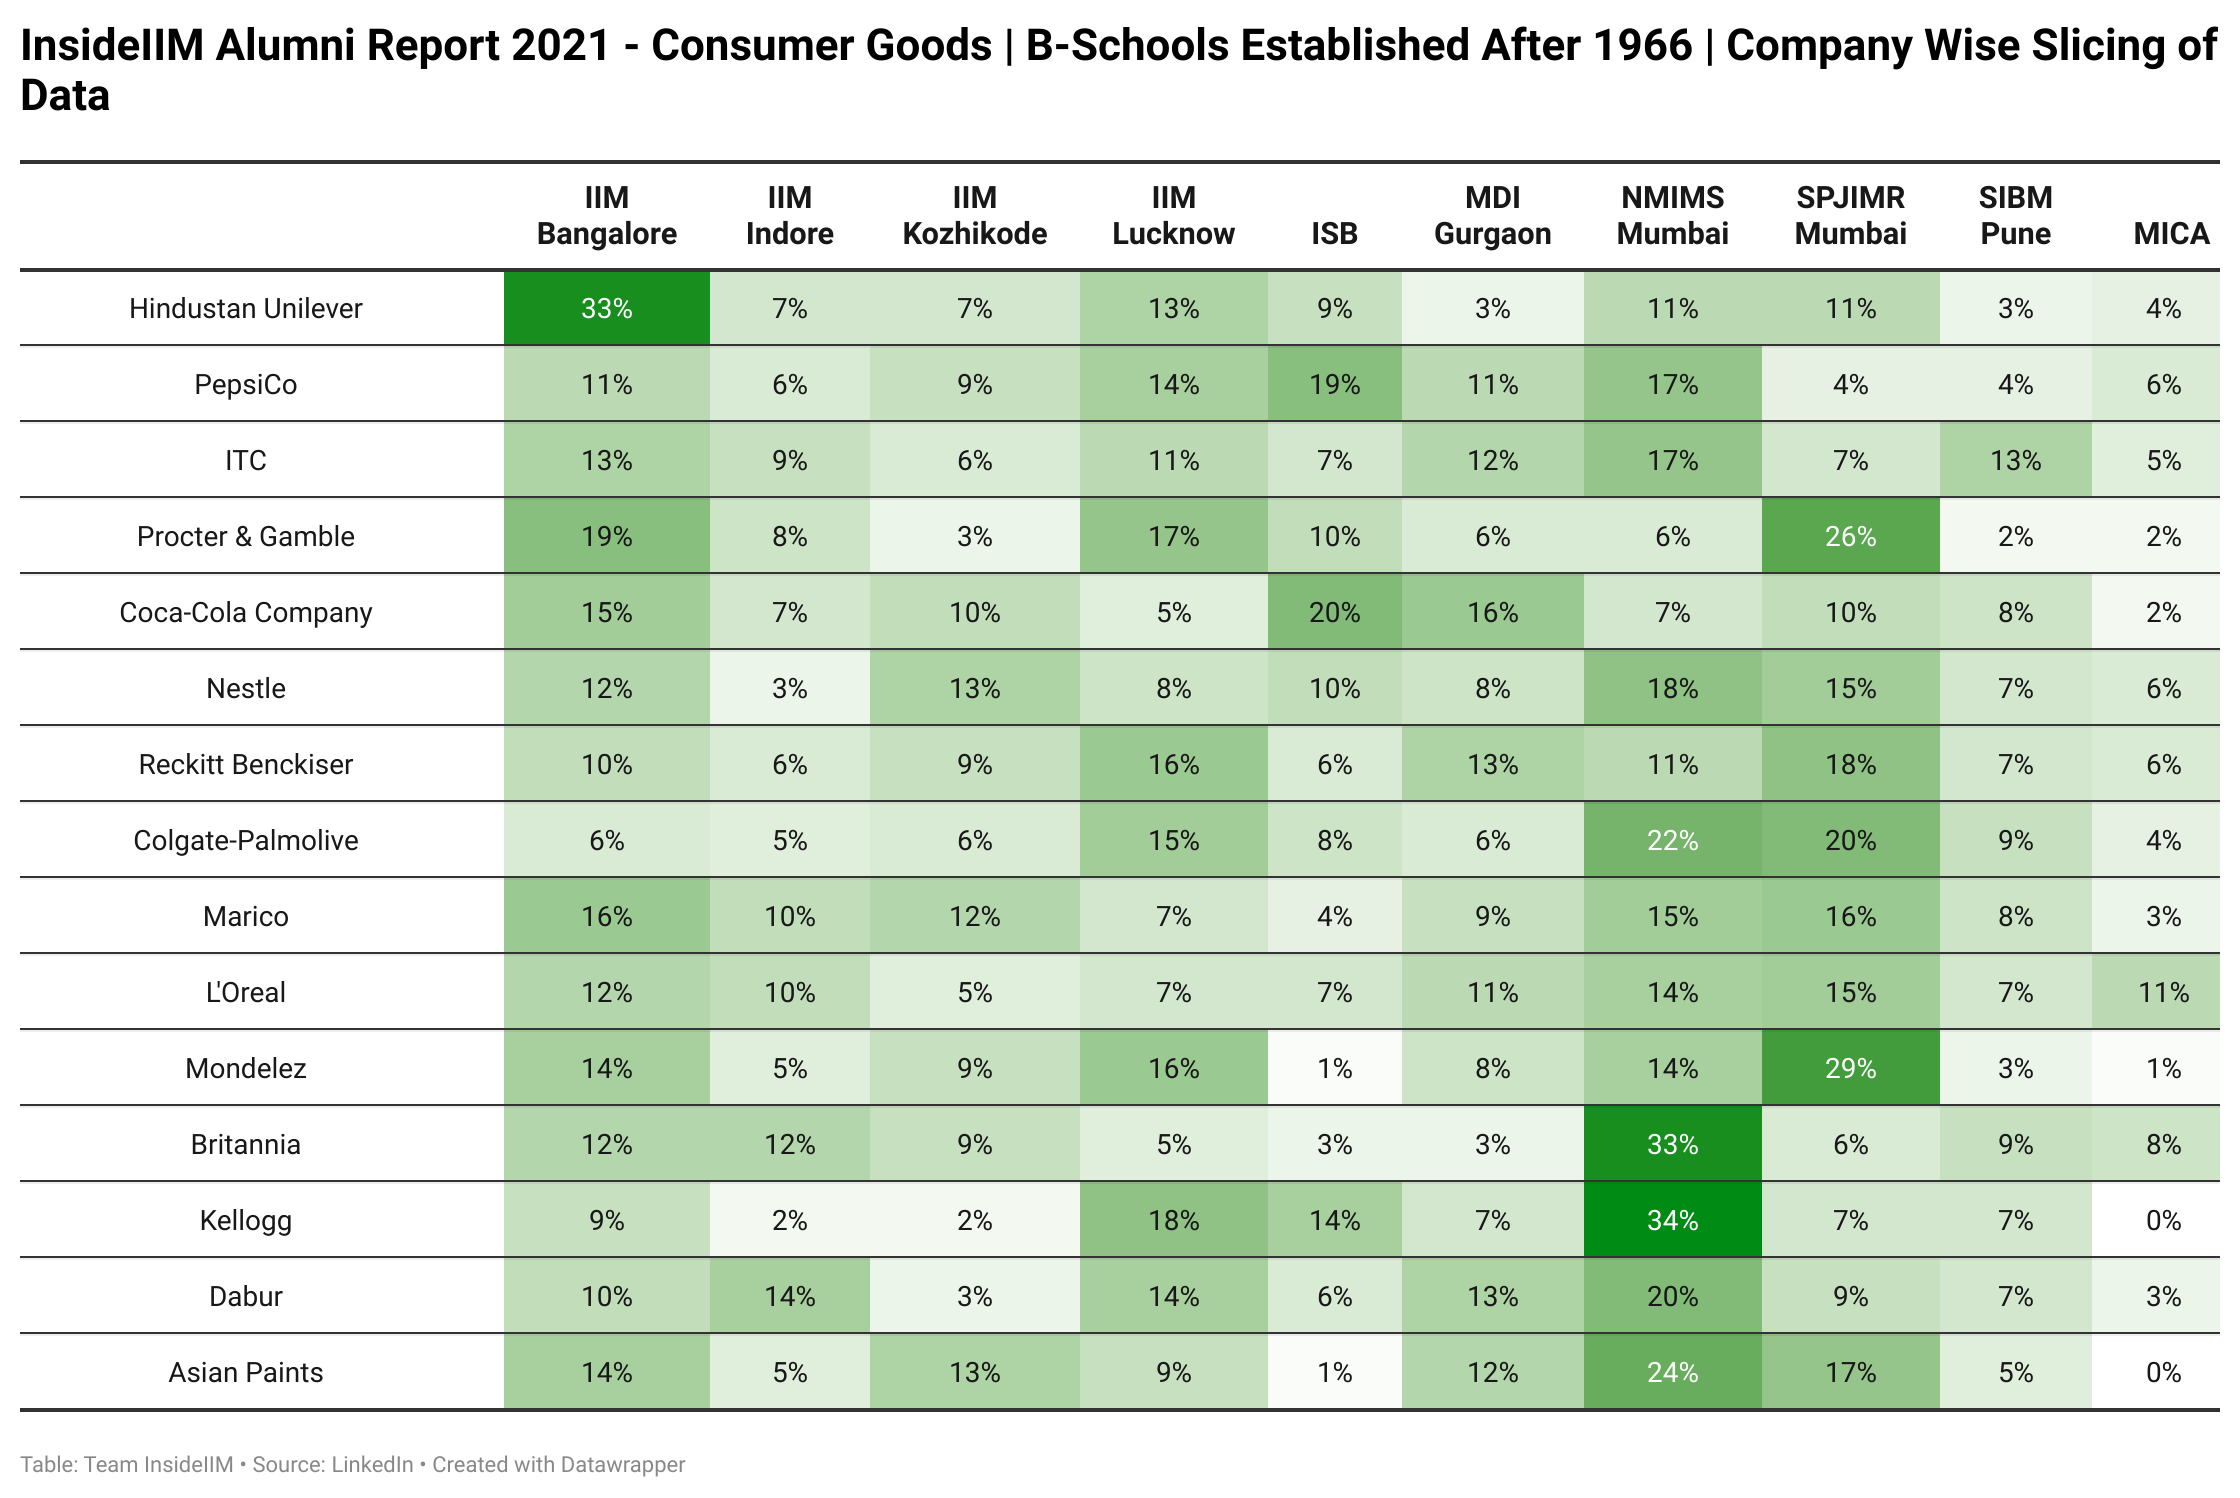 Which FMCG Companies Are Alumni of Top B-Schools Working At - Established After 1966 | Company Wise Segregation